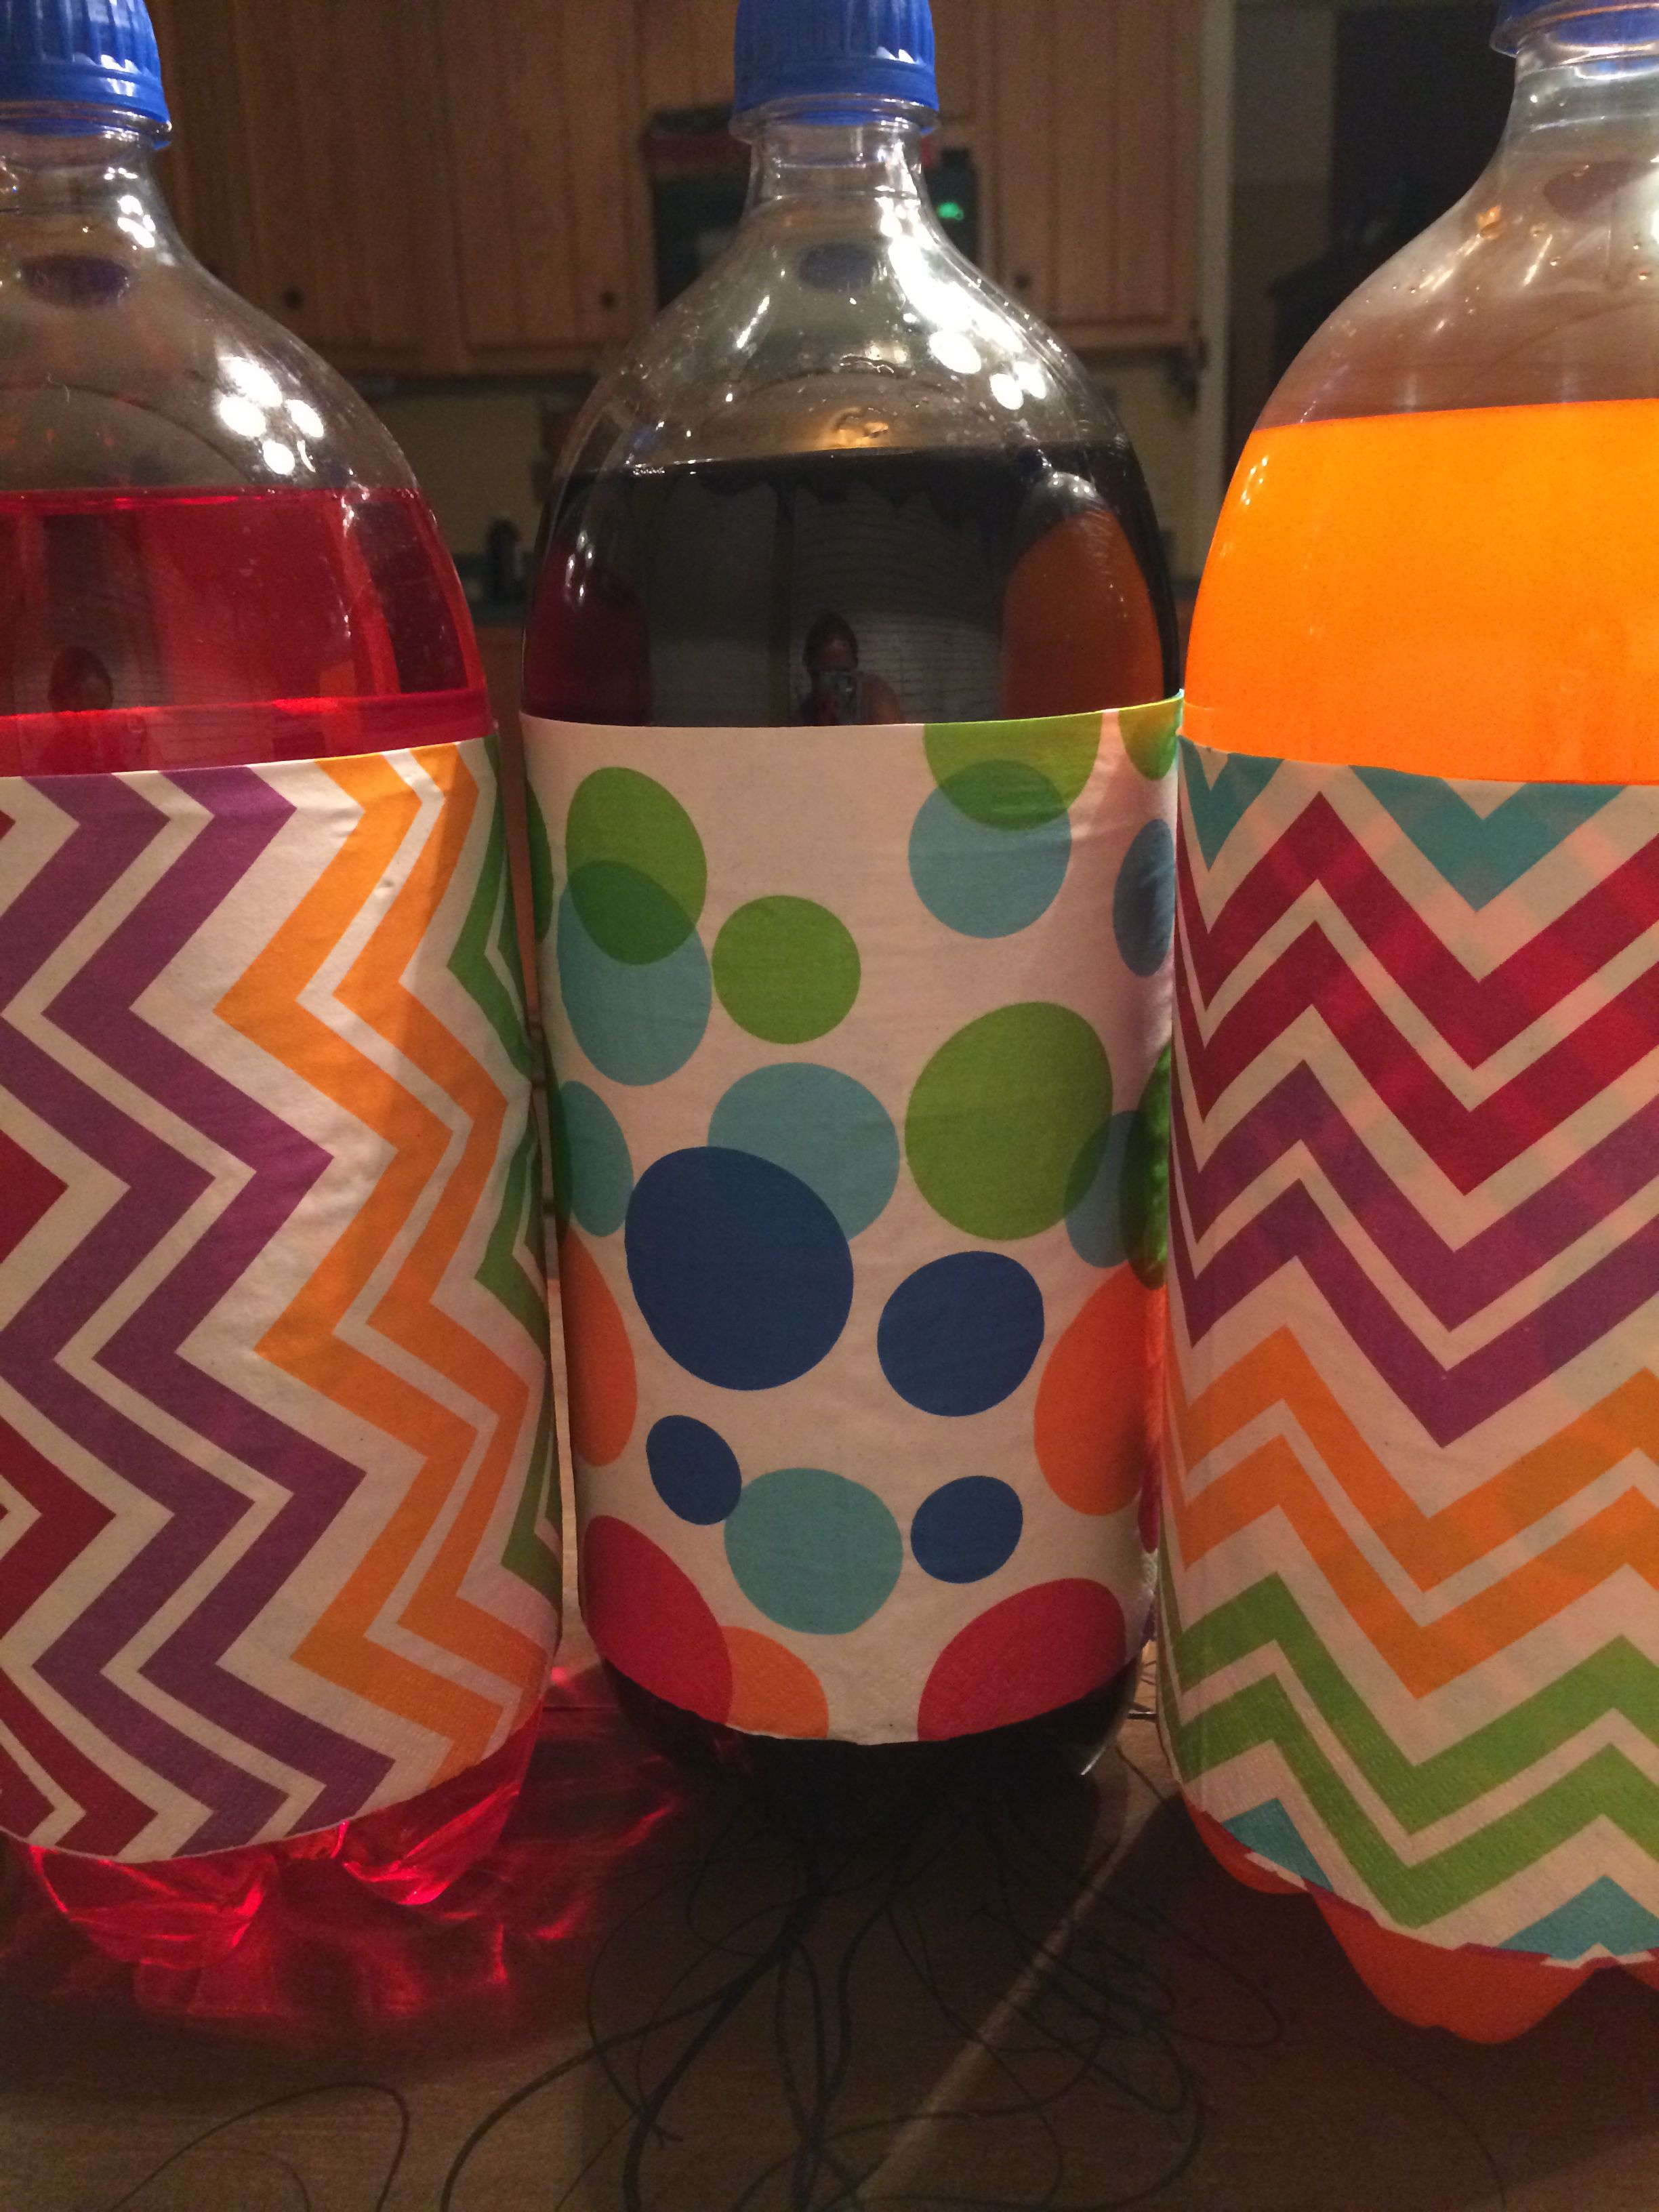 Cover up ugly pop bottles to match your party with party napkins!